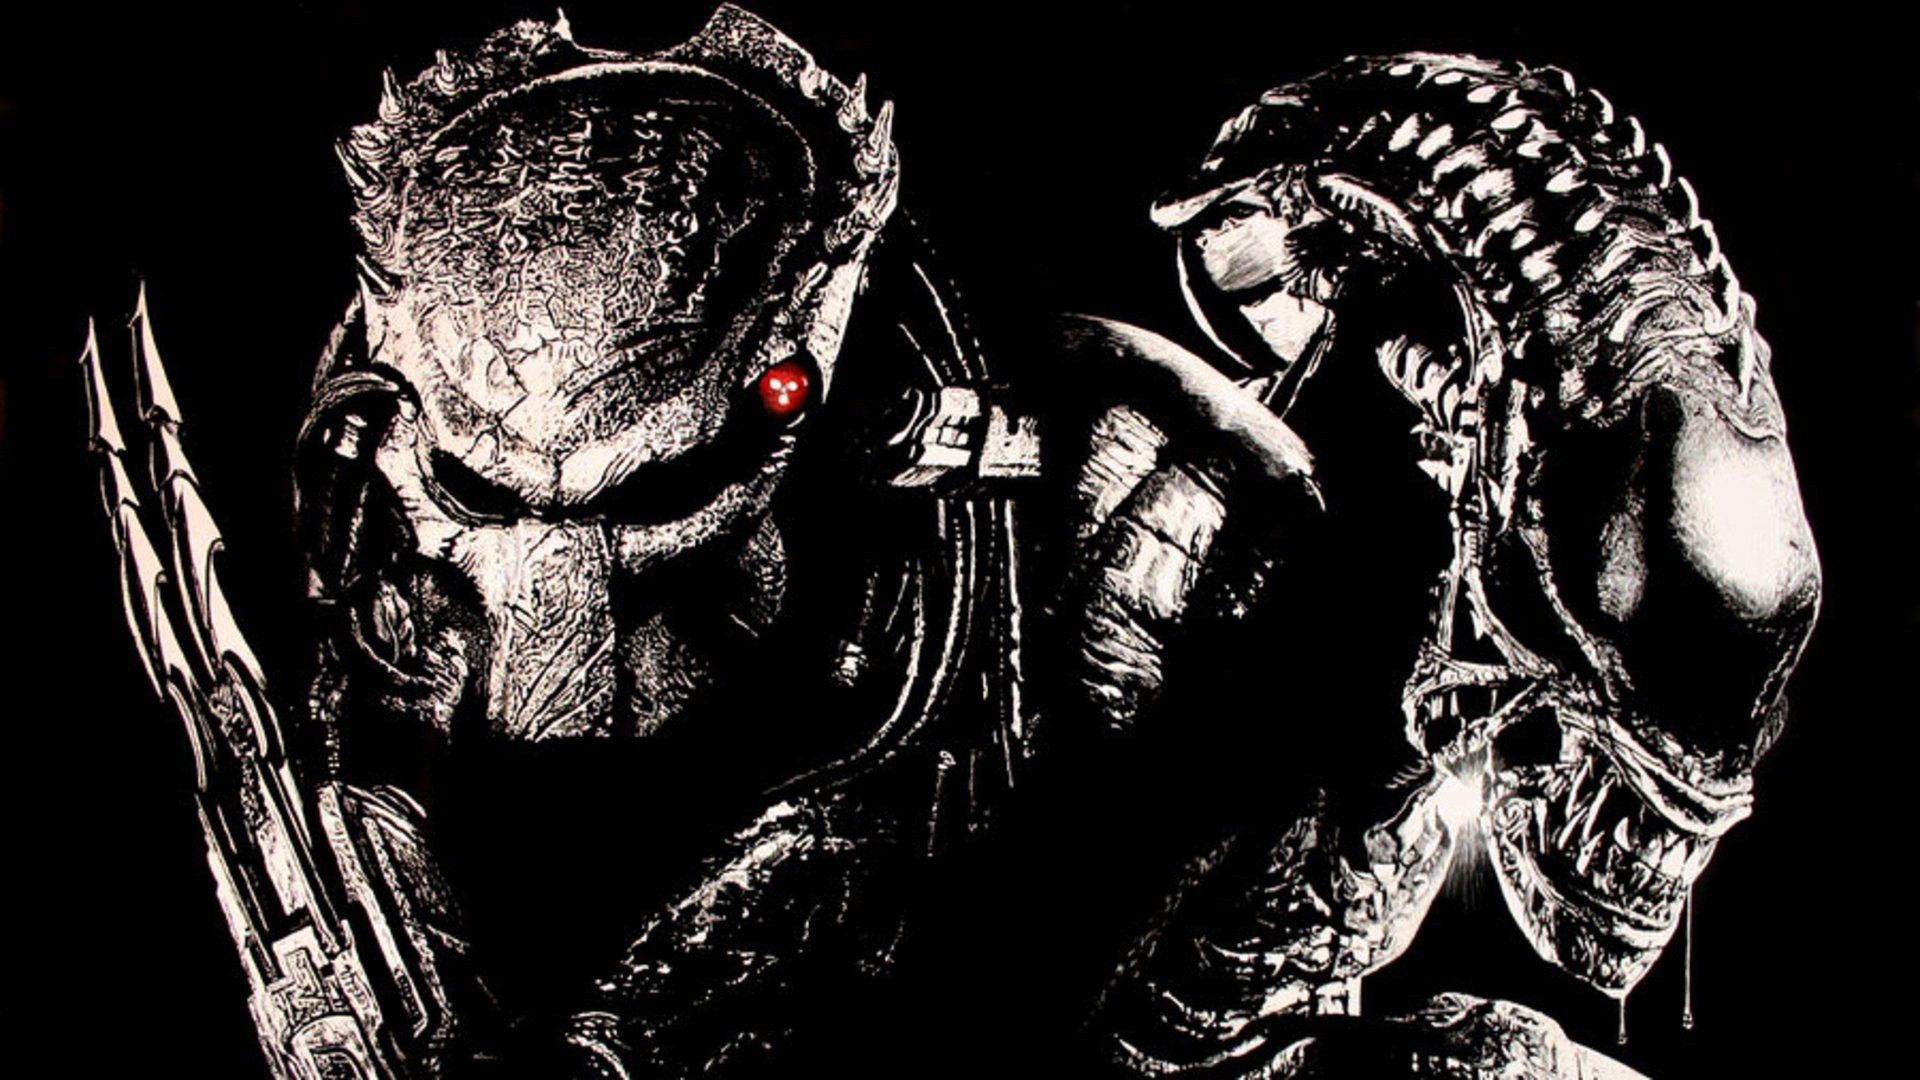 alien vs predator wallpaper 2 | wallpapersbq